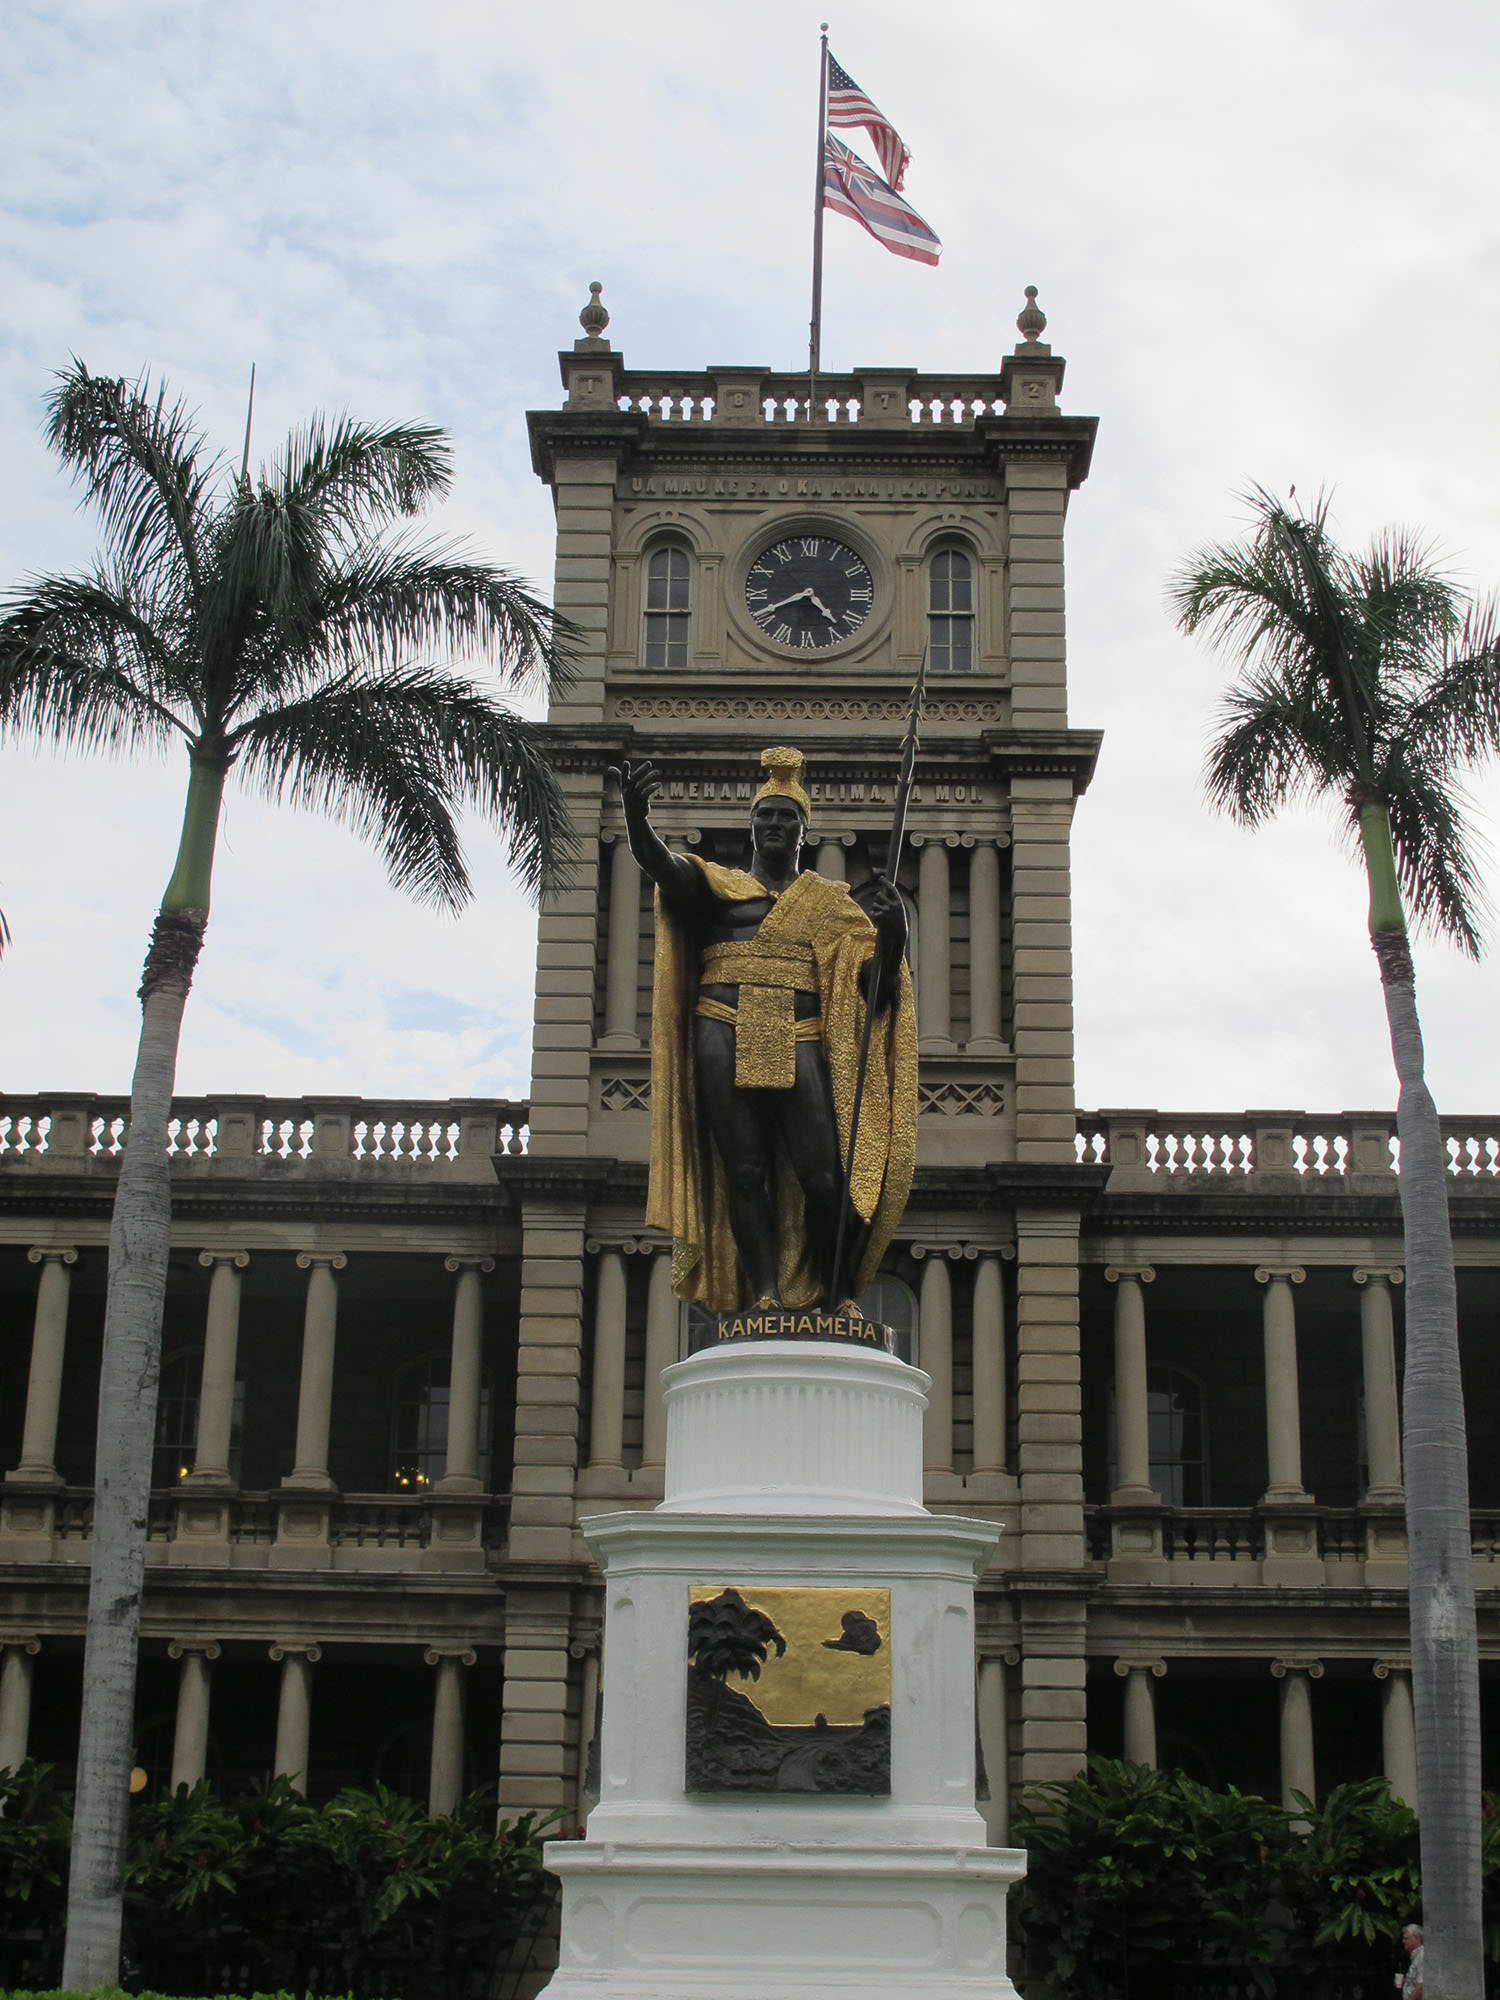 Fig. 15 Statue of Kamehameha I in front of Hawai'i State Supreme Court (in Aliʻiolani Hale), Thomas R. Gould, sculptor, cast bronze, statue dedicated 1883, Oʻahu, May 2011. Photo: ©Sally Promey